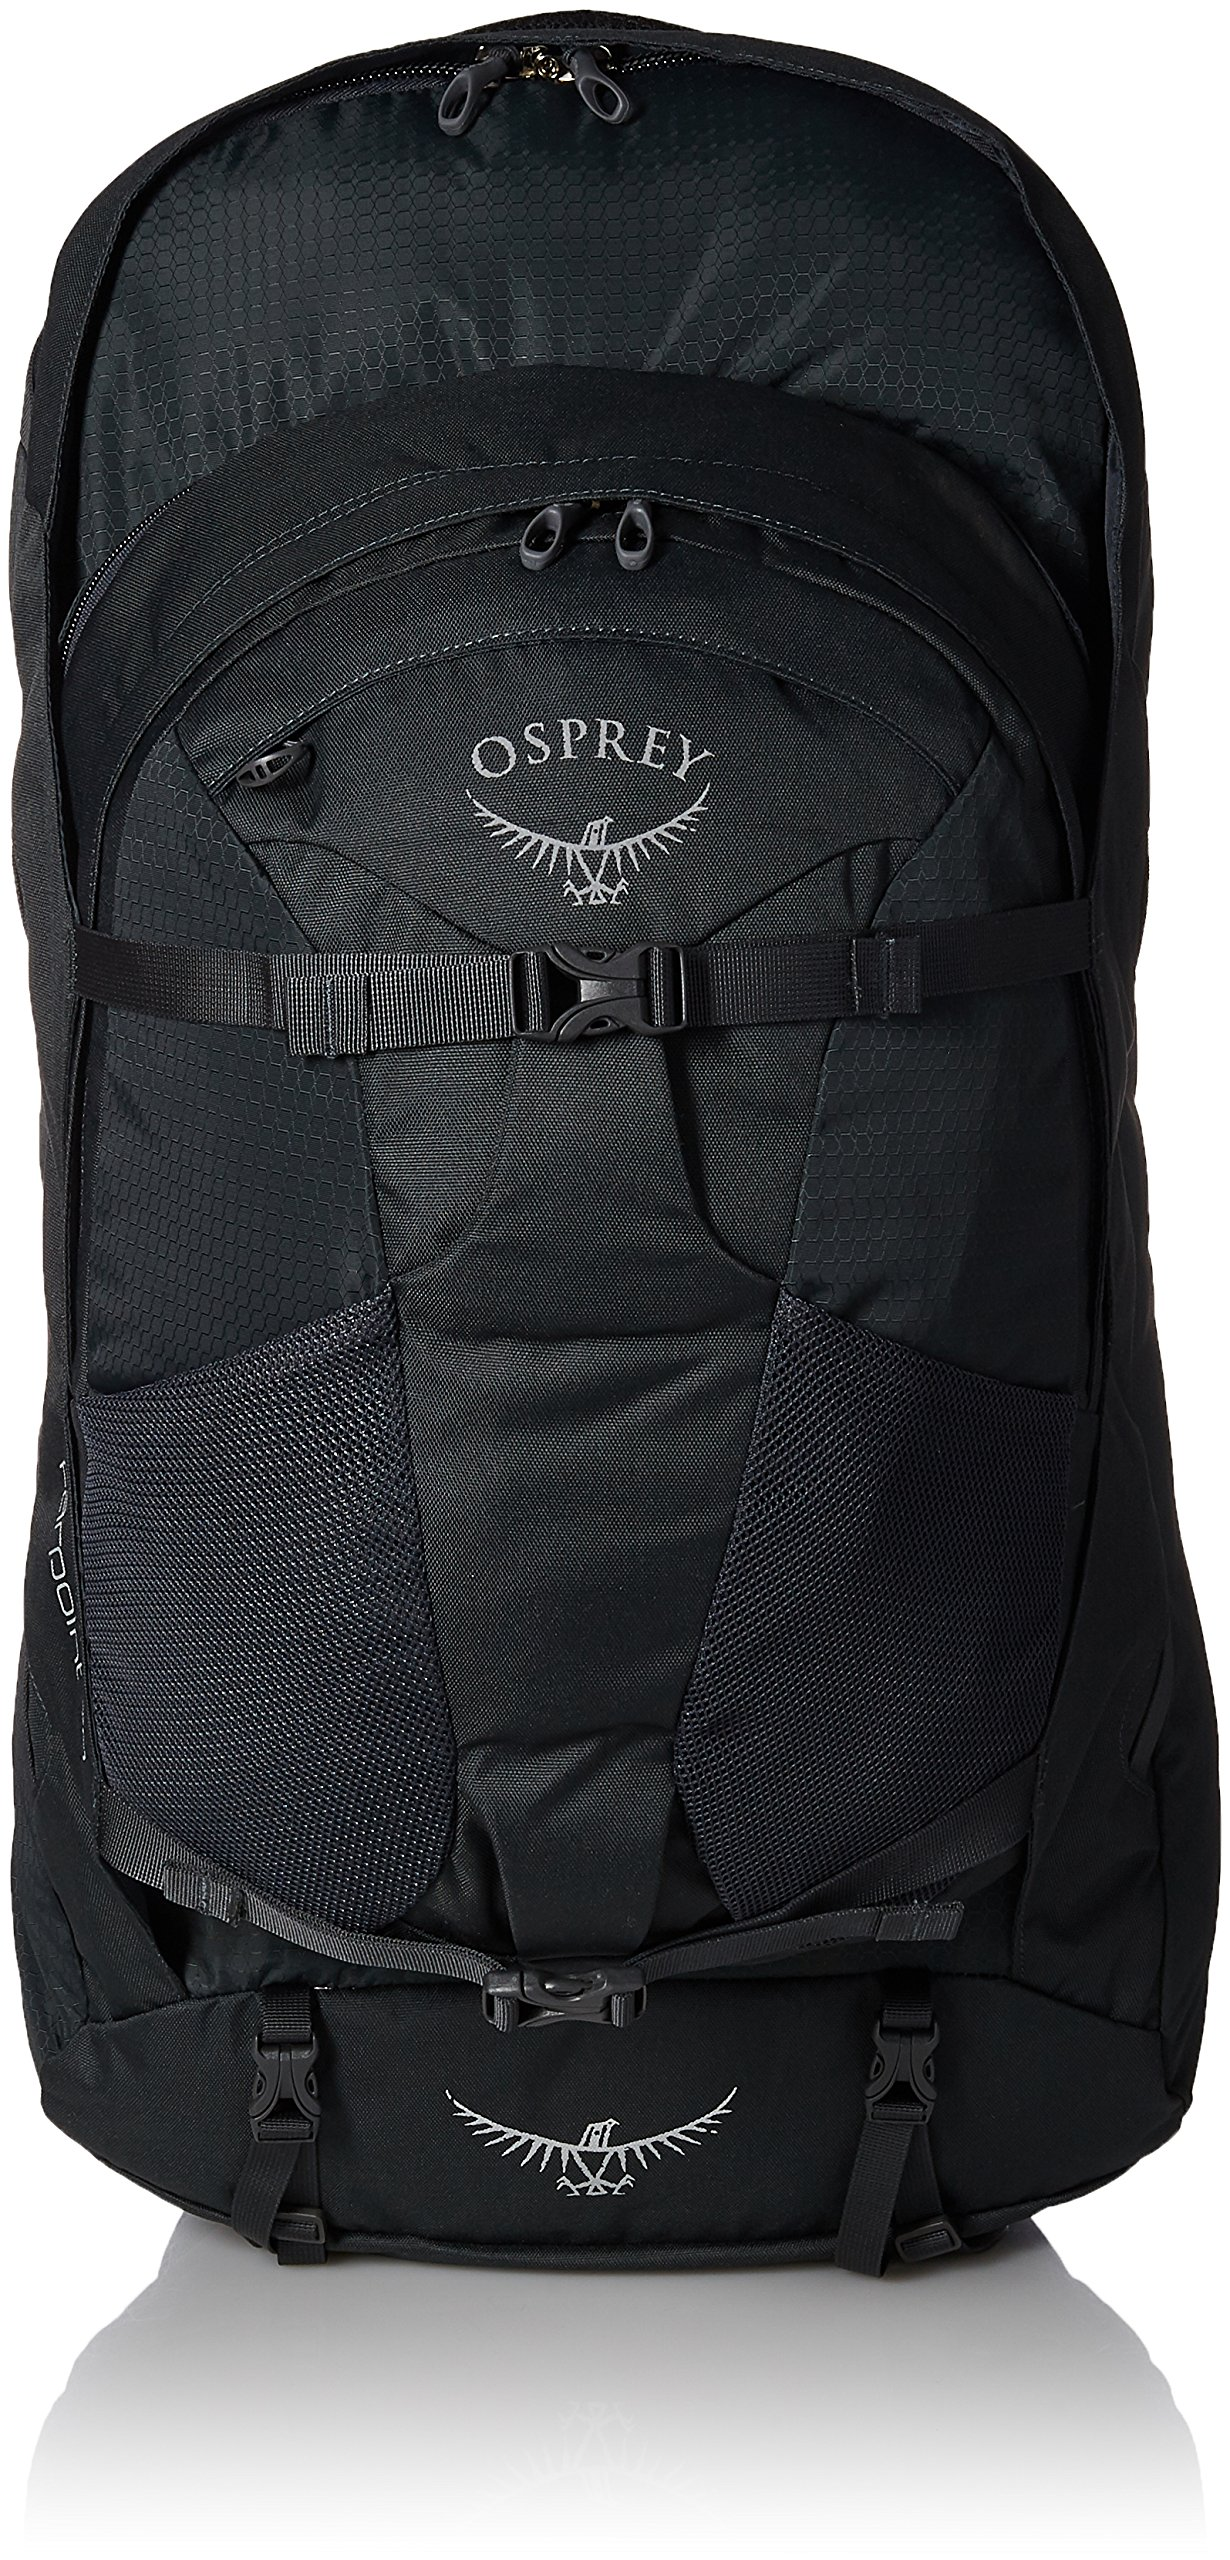 Osprey Packs Farpoint 70 Travel Backpack, Volcanic Grey, Medium/Large by Osprey